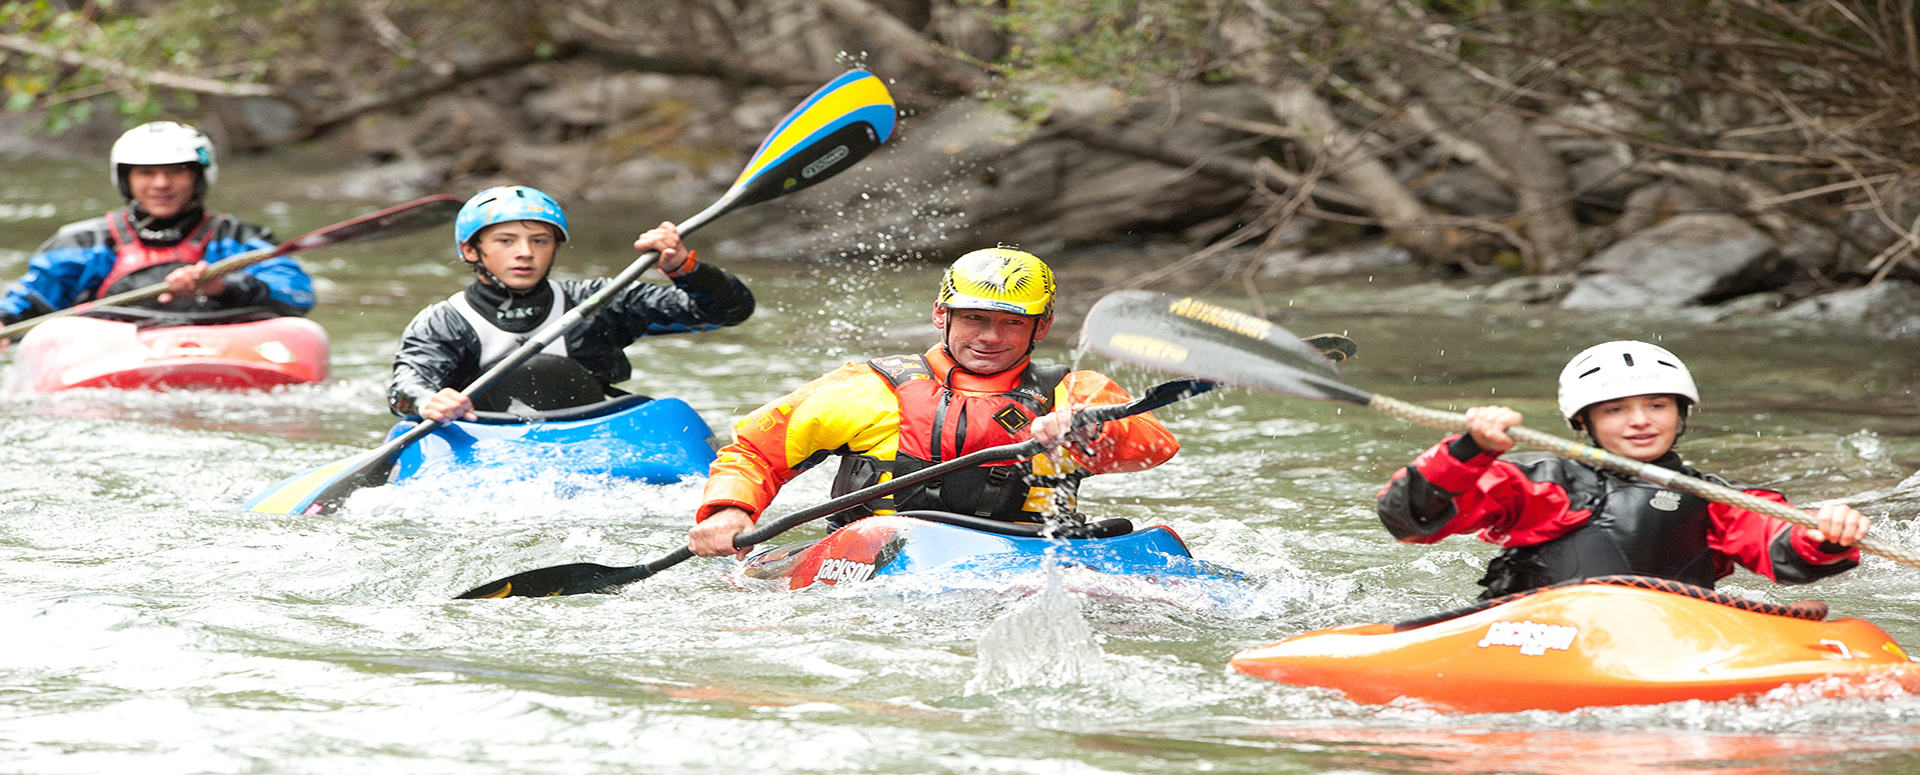 RocRoi Kayak Demo Day - Julio 2015